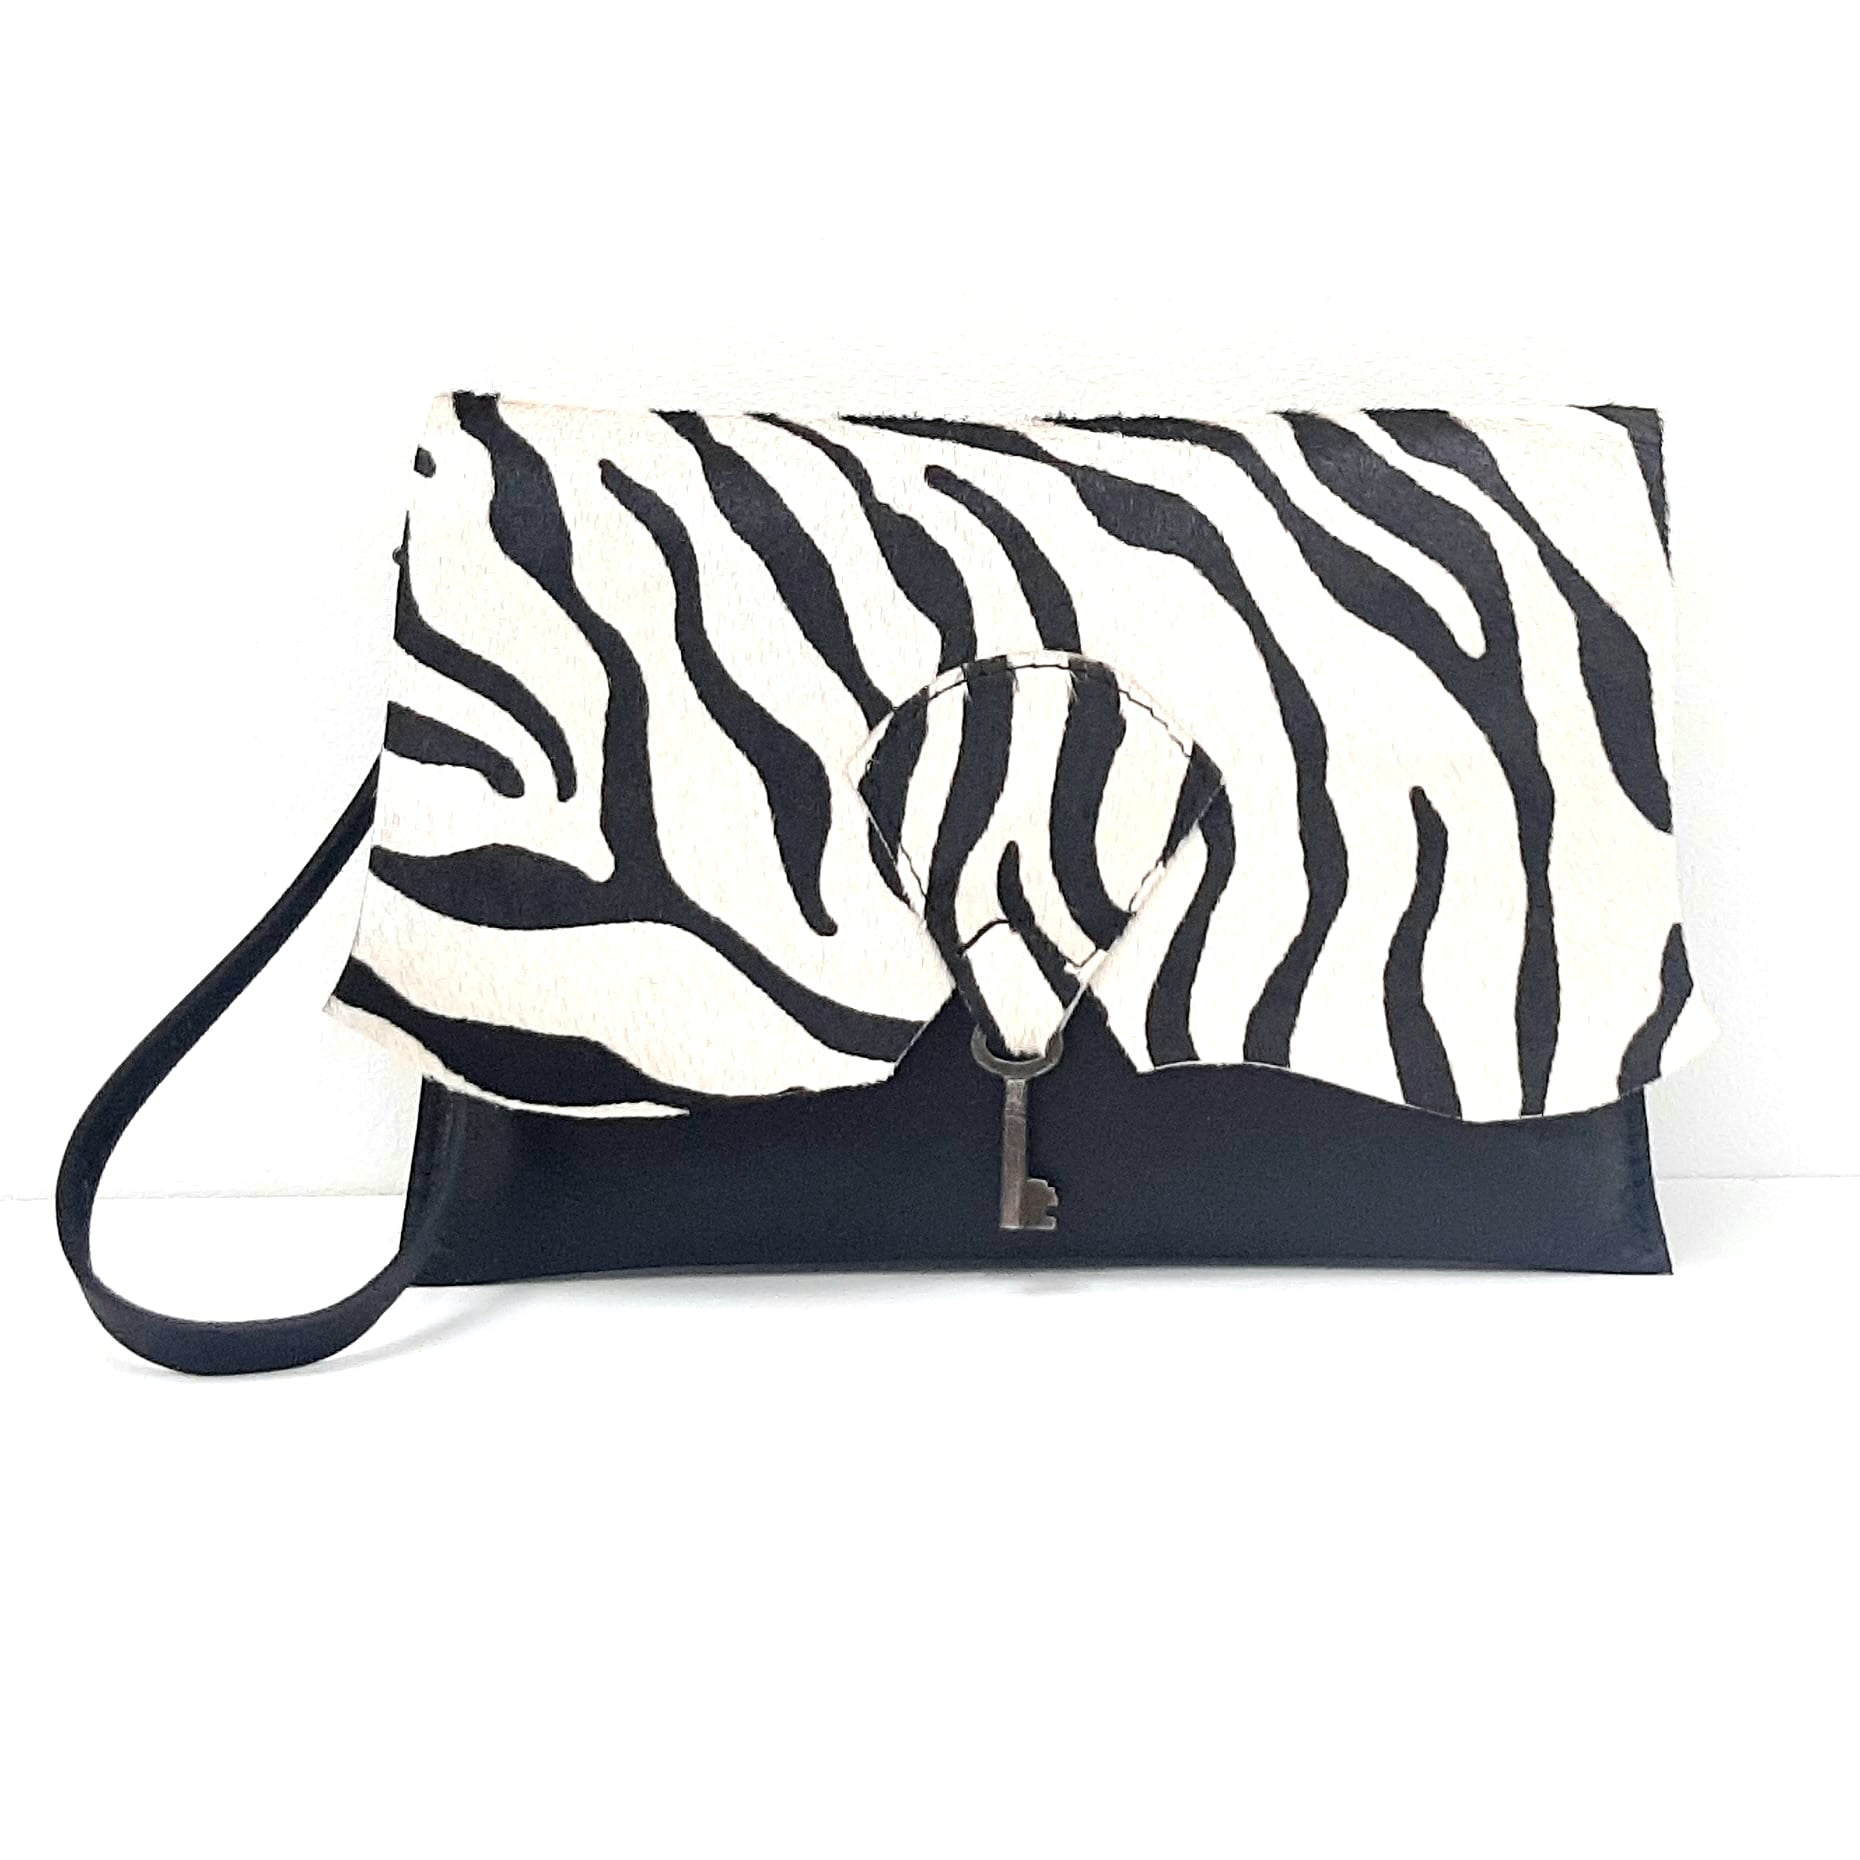 Safari Clutch Purse with Vintage Key Detail - Zebra & Black